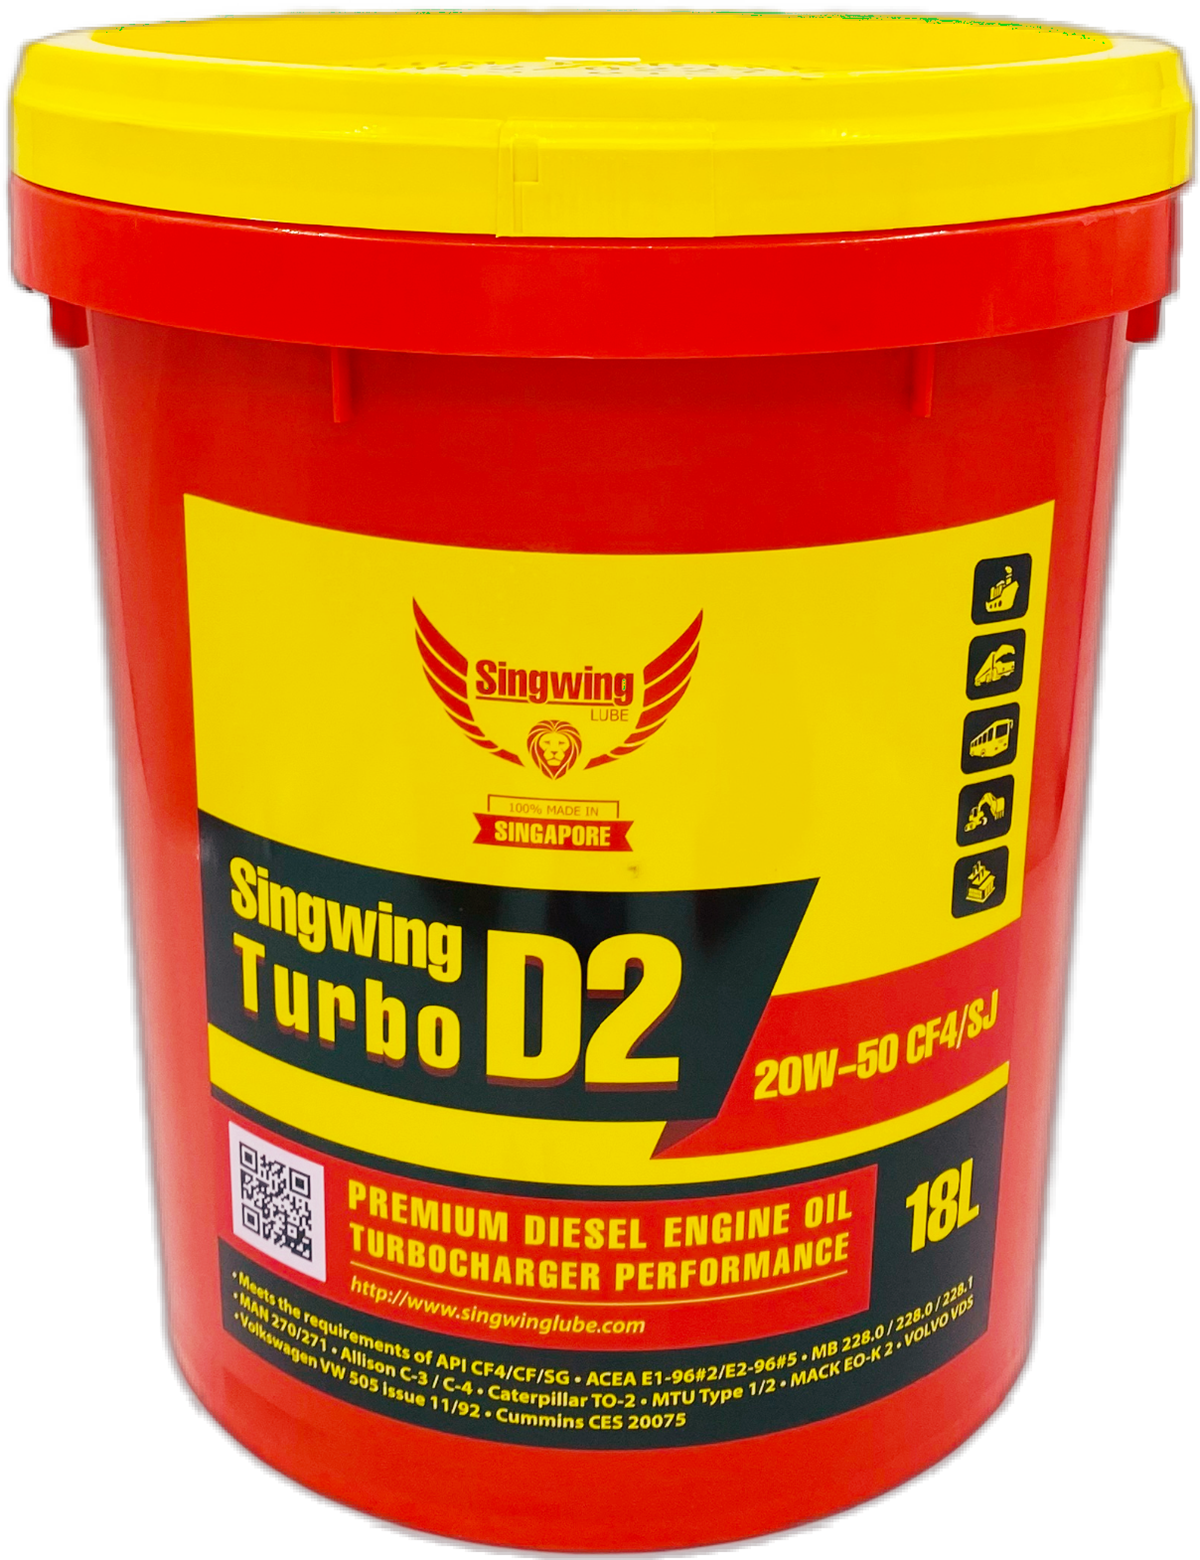 Singwing D2 Turbo